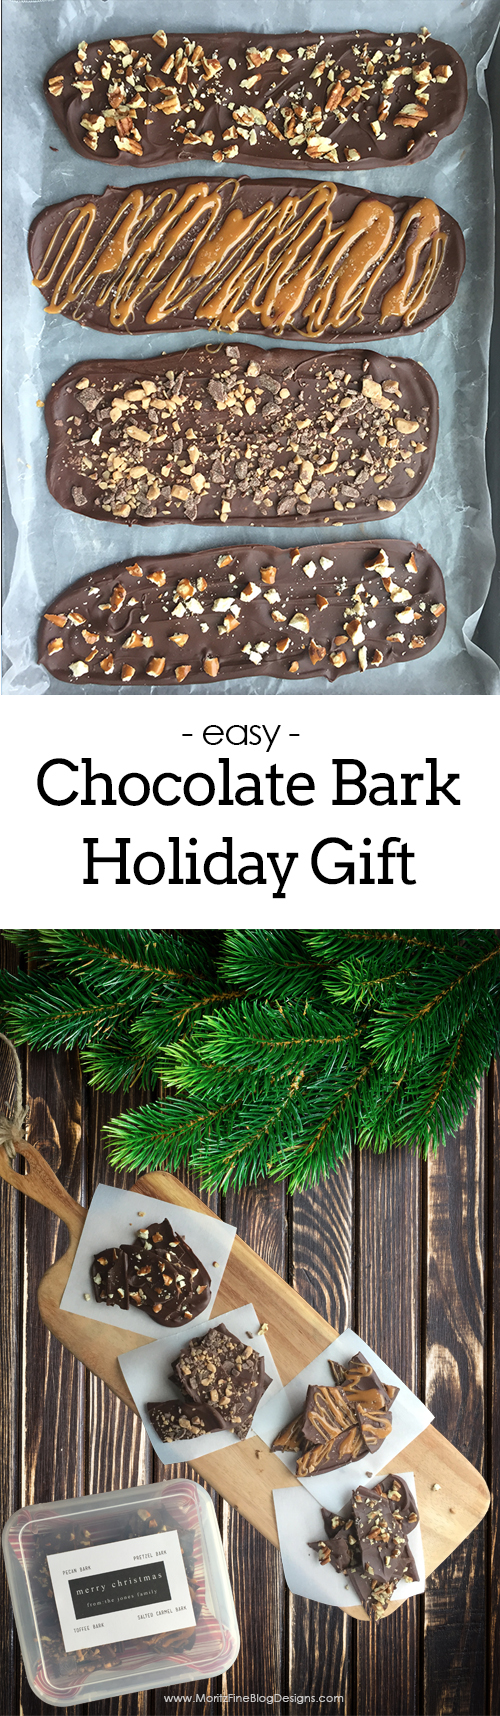 chocolate bark recipe | edible holiday gifts | homemade gifts | holiday gifts | free printable